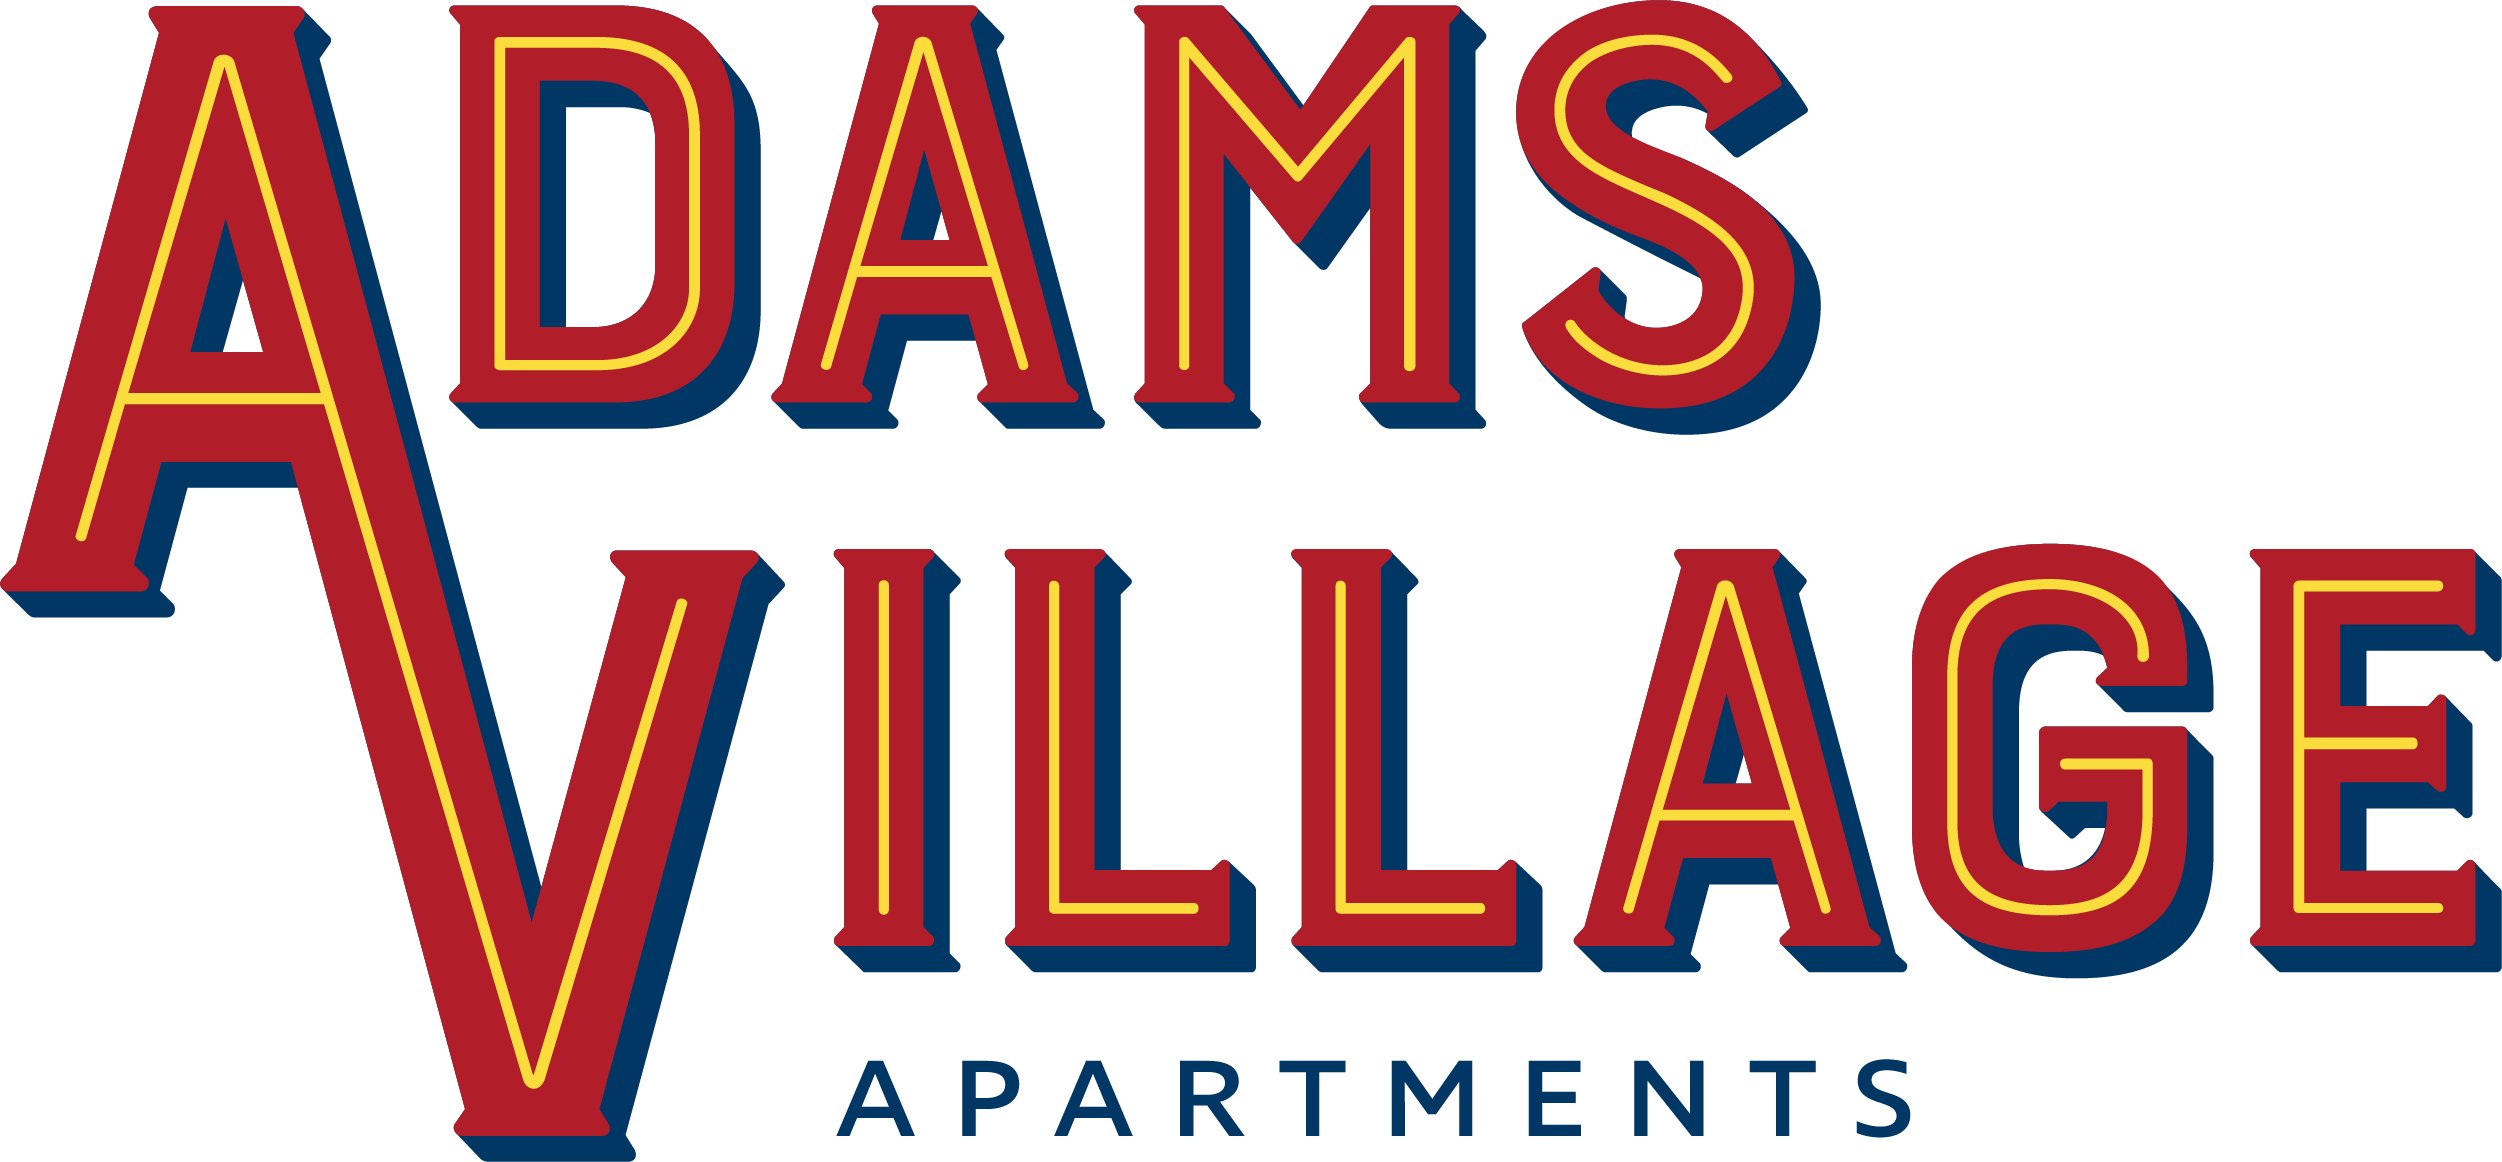 Regency - Adams Village Apartments - Branding